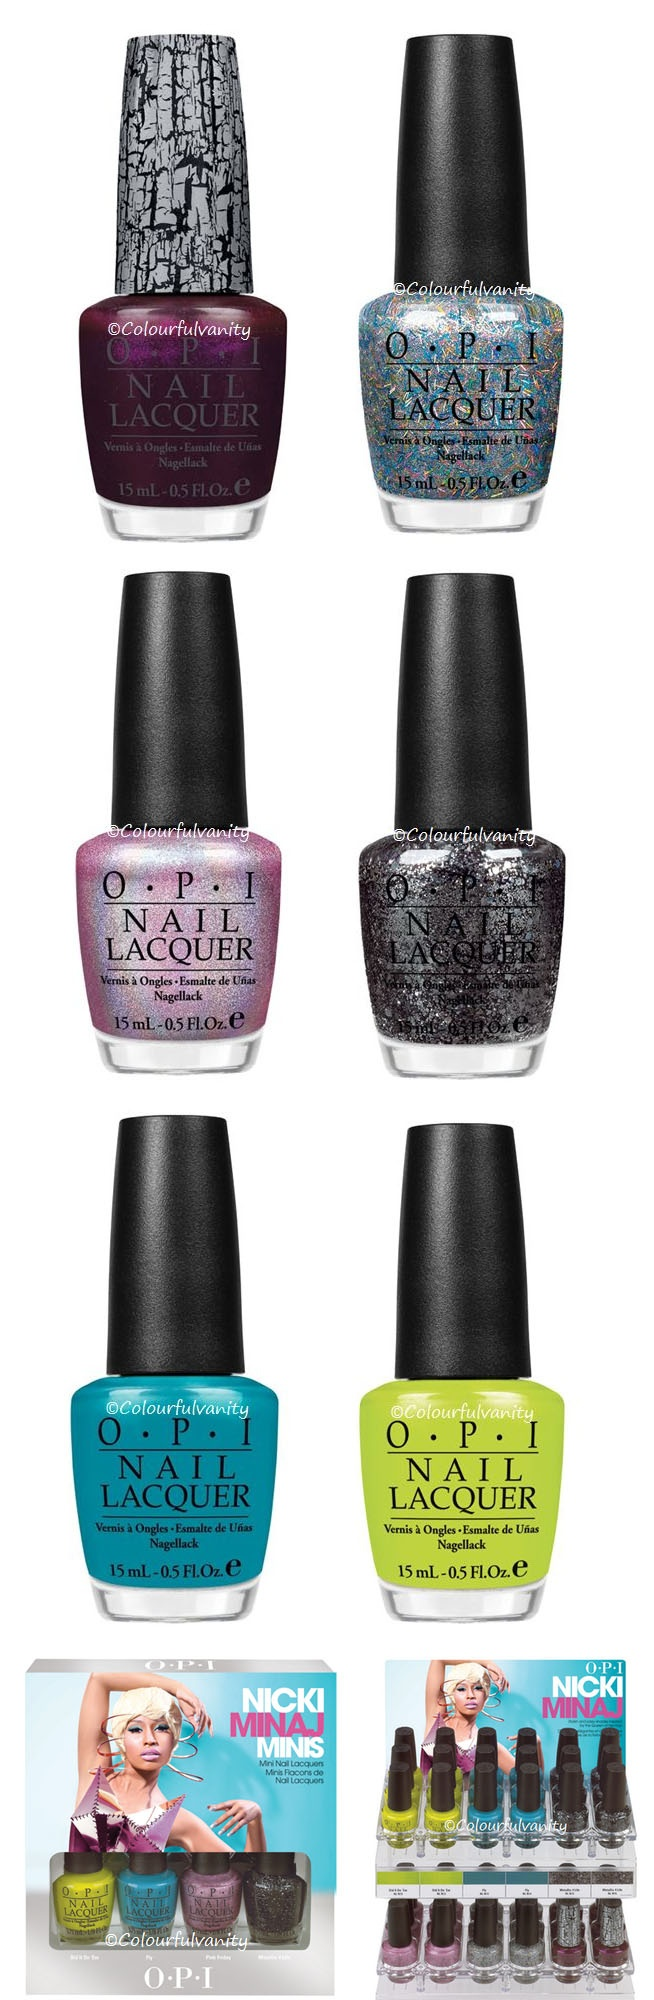 Nicki Minaj OPI! Soooo excited for this to come out next year! Will probably buy the whole line! :)